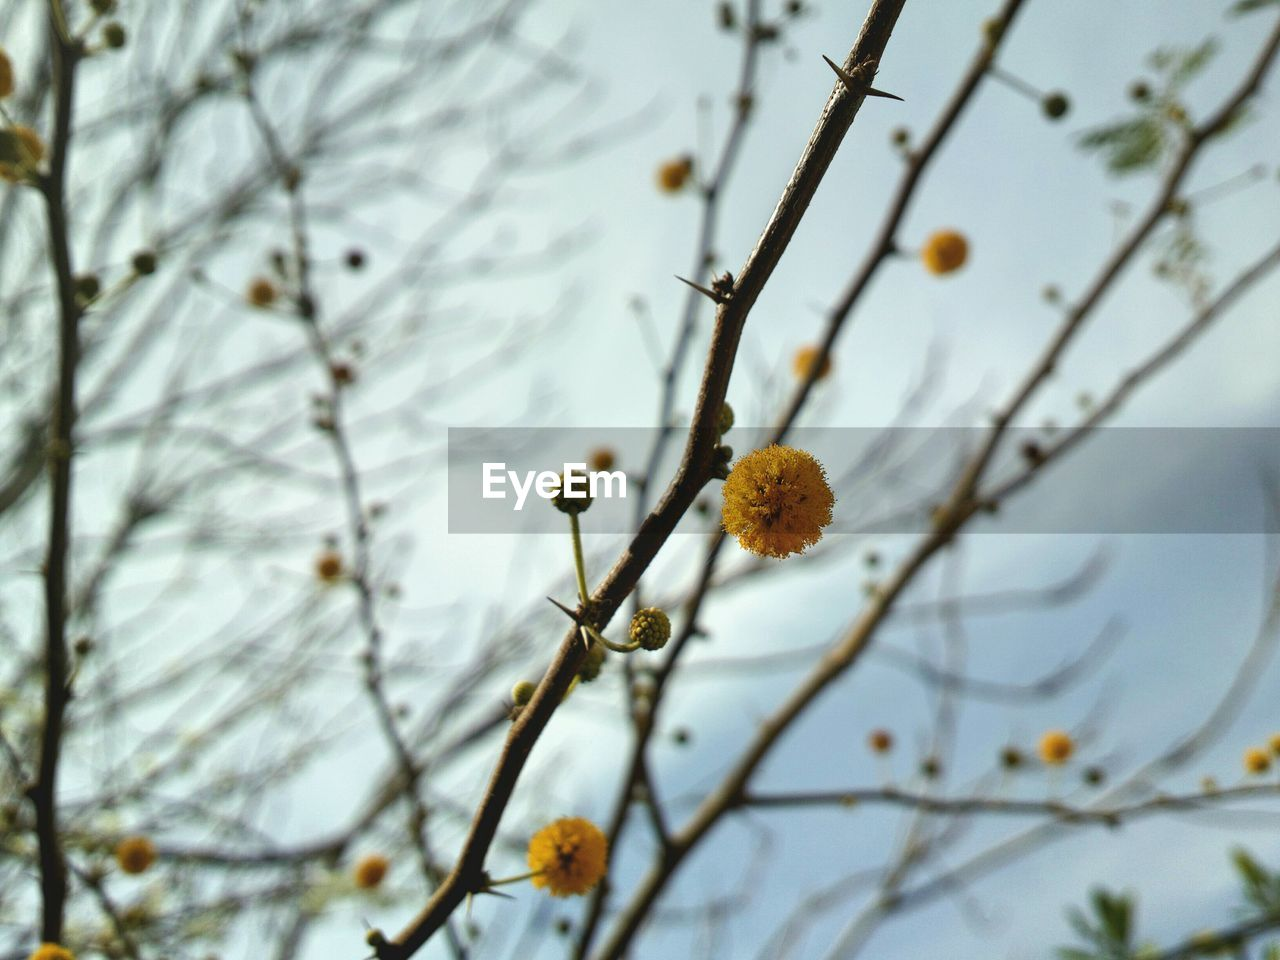 plant, tree, growth, branch, flower, beauty in nature, freshness, flowering plant, selective focus, nature, low angle view, focus on foreground, fragility, day, no people, vulnerability, sky, close-up, outdoors, springtime, pollen, flower head